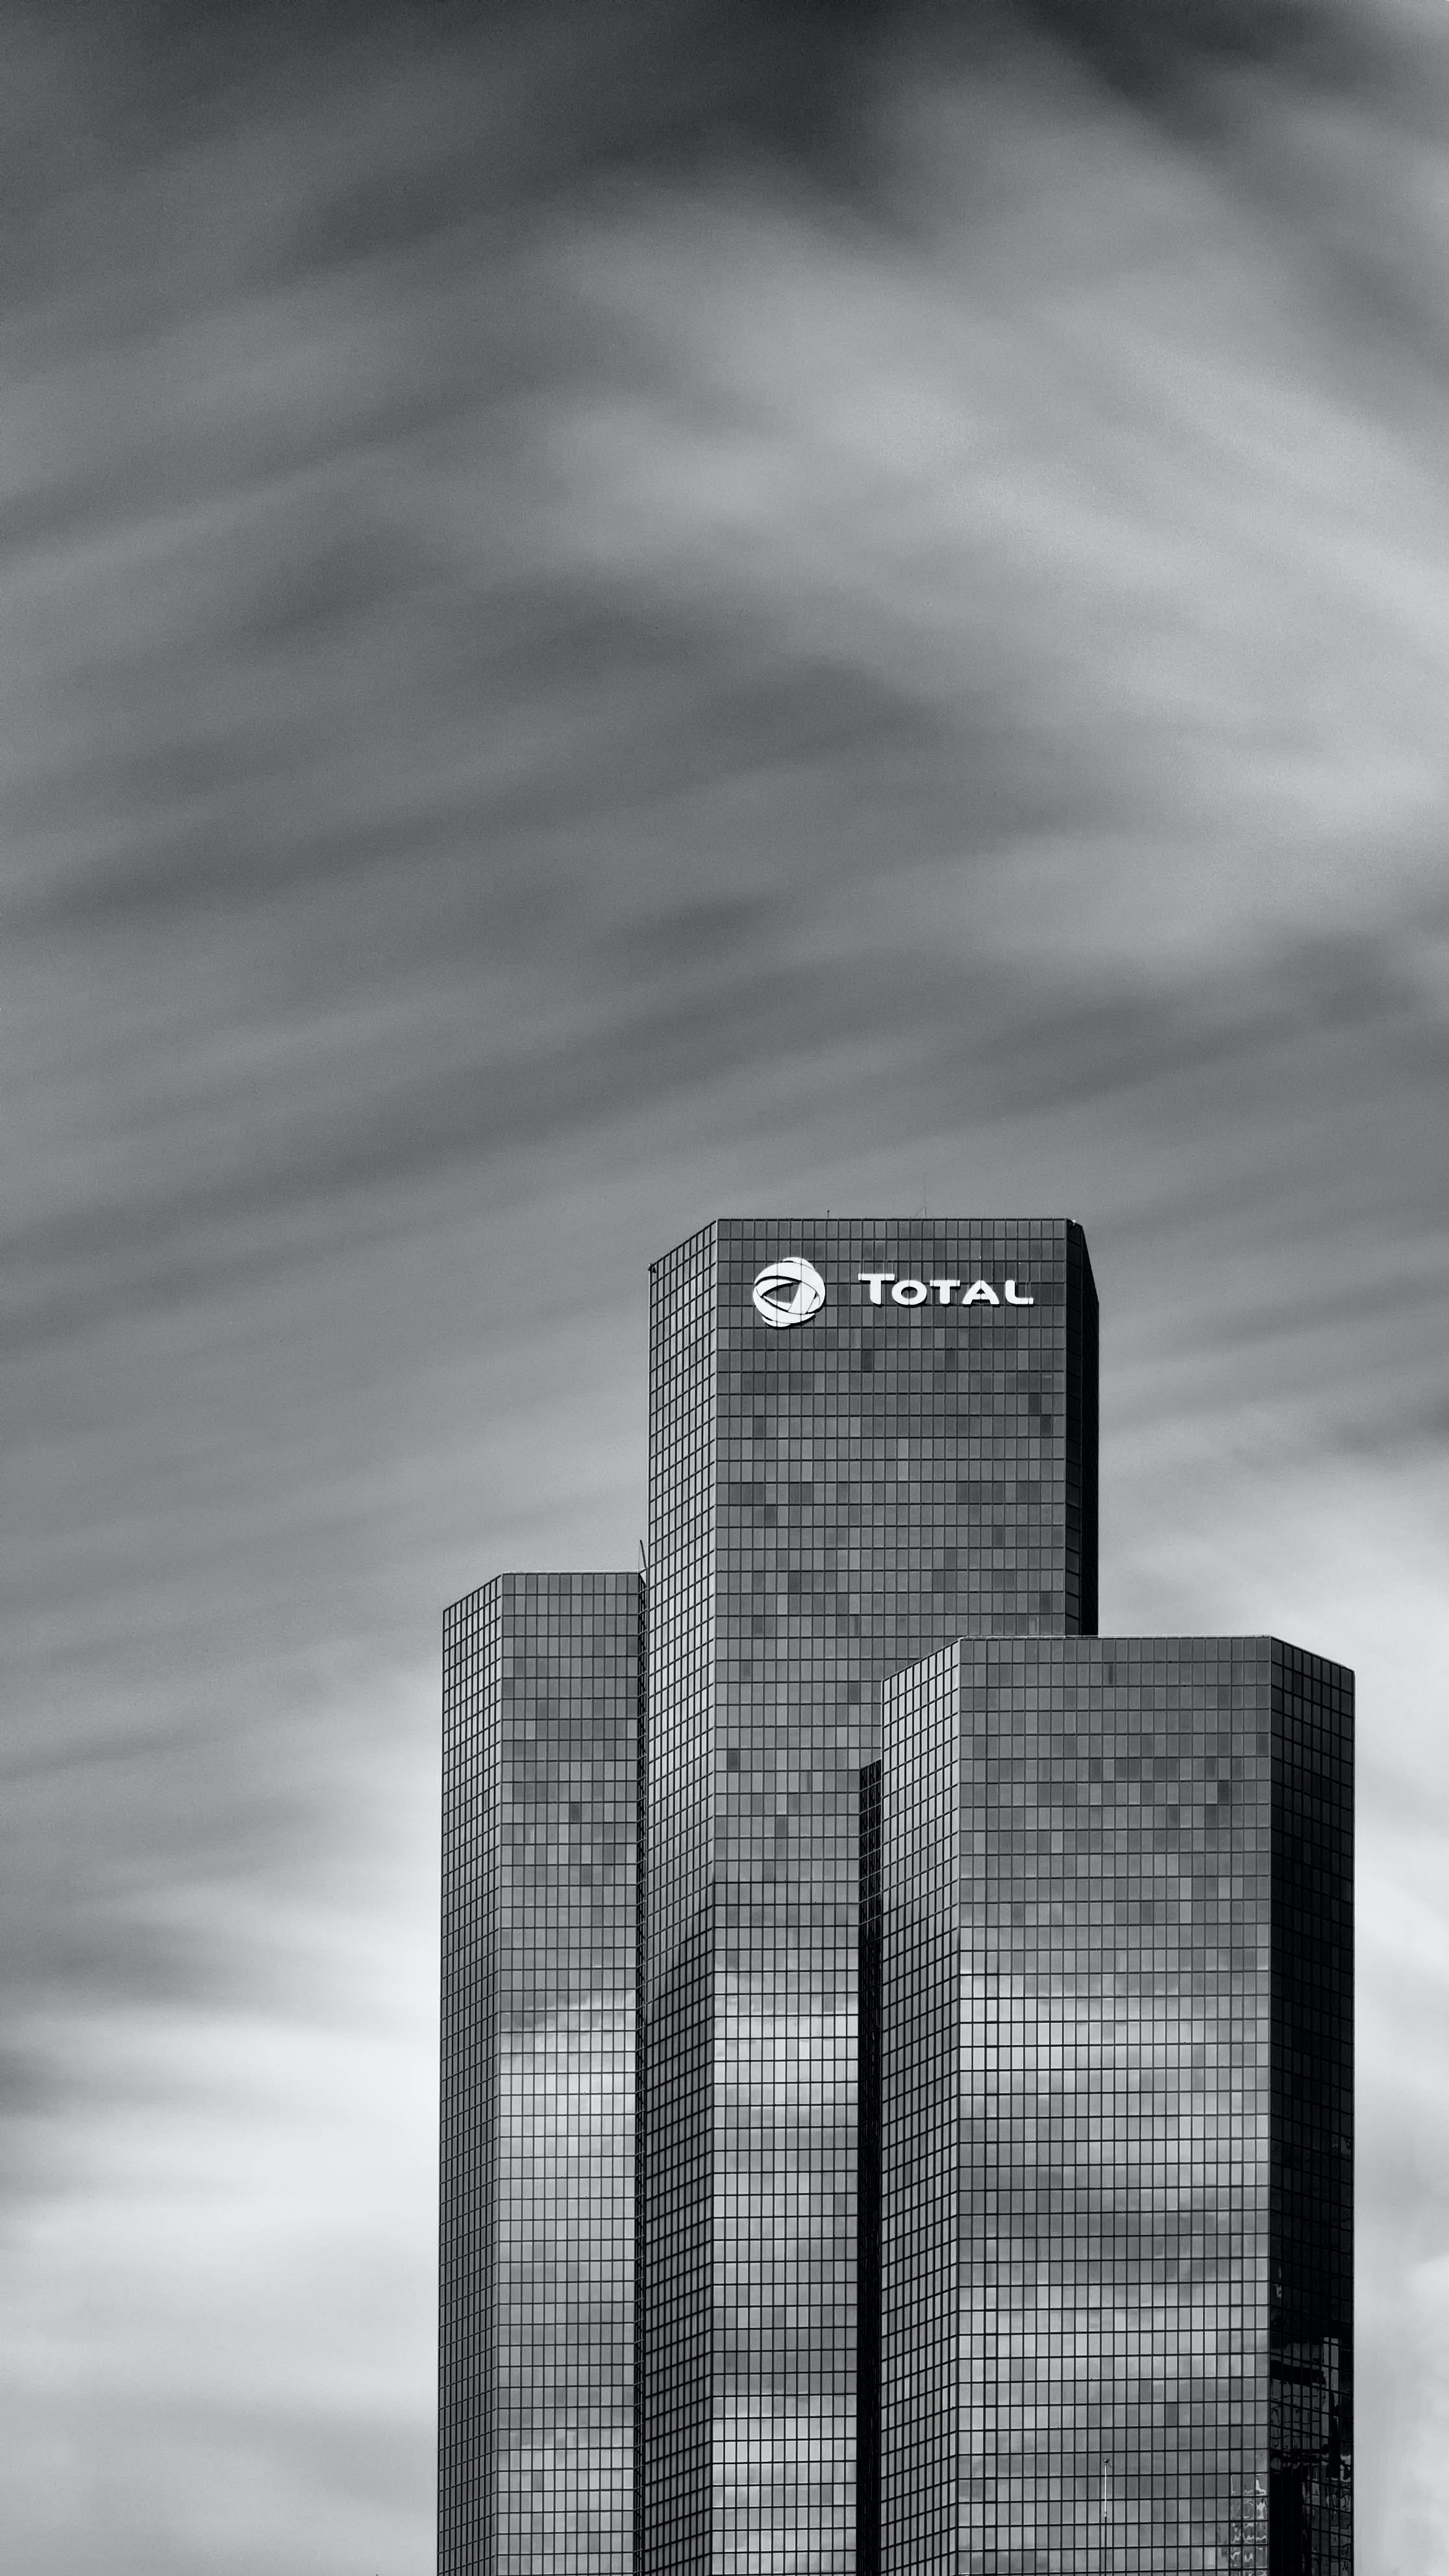 Total Building Greyscale Photo